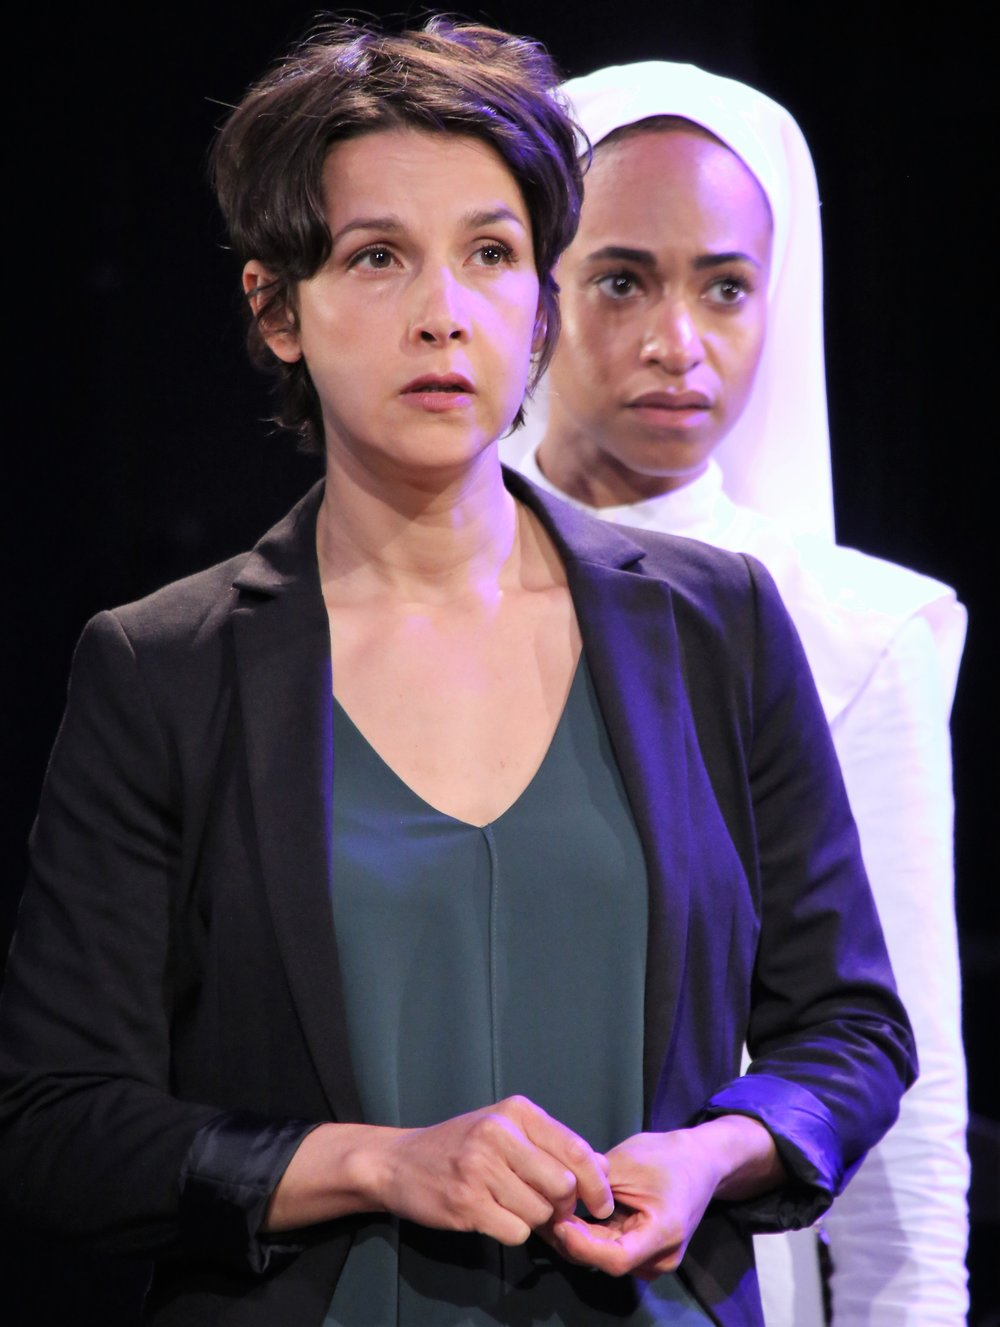 Ricketts with Merritt Janson as Mariana. Photographs by Gerry Goodstein.